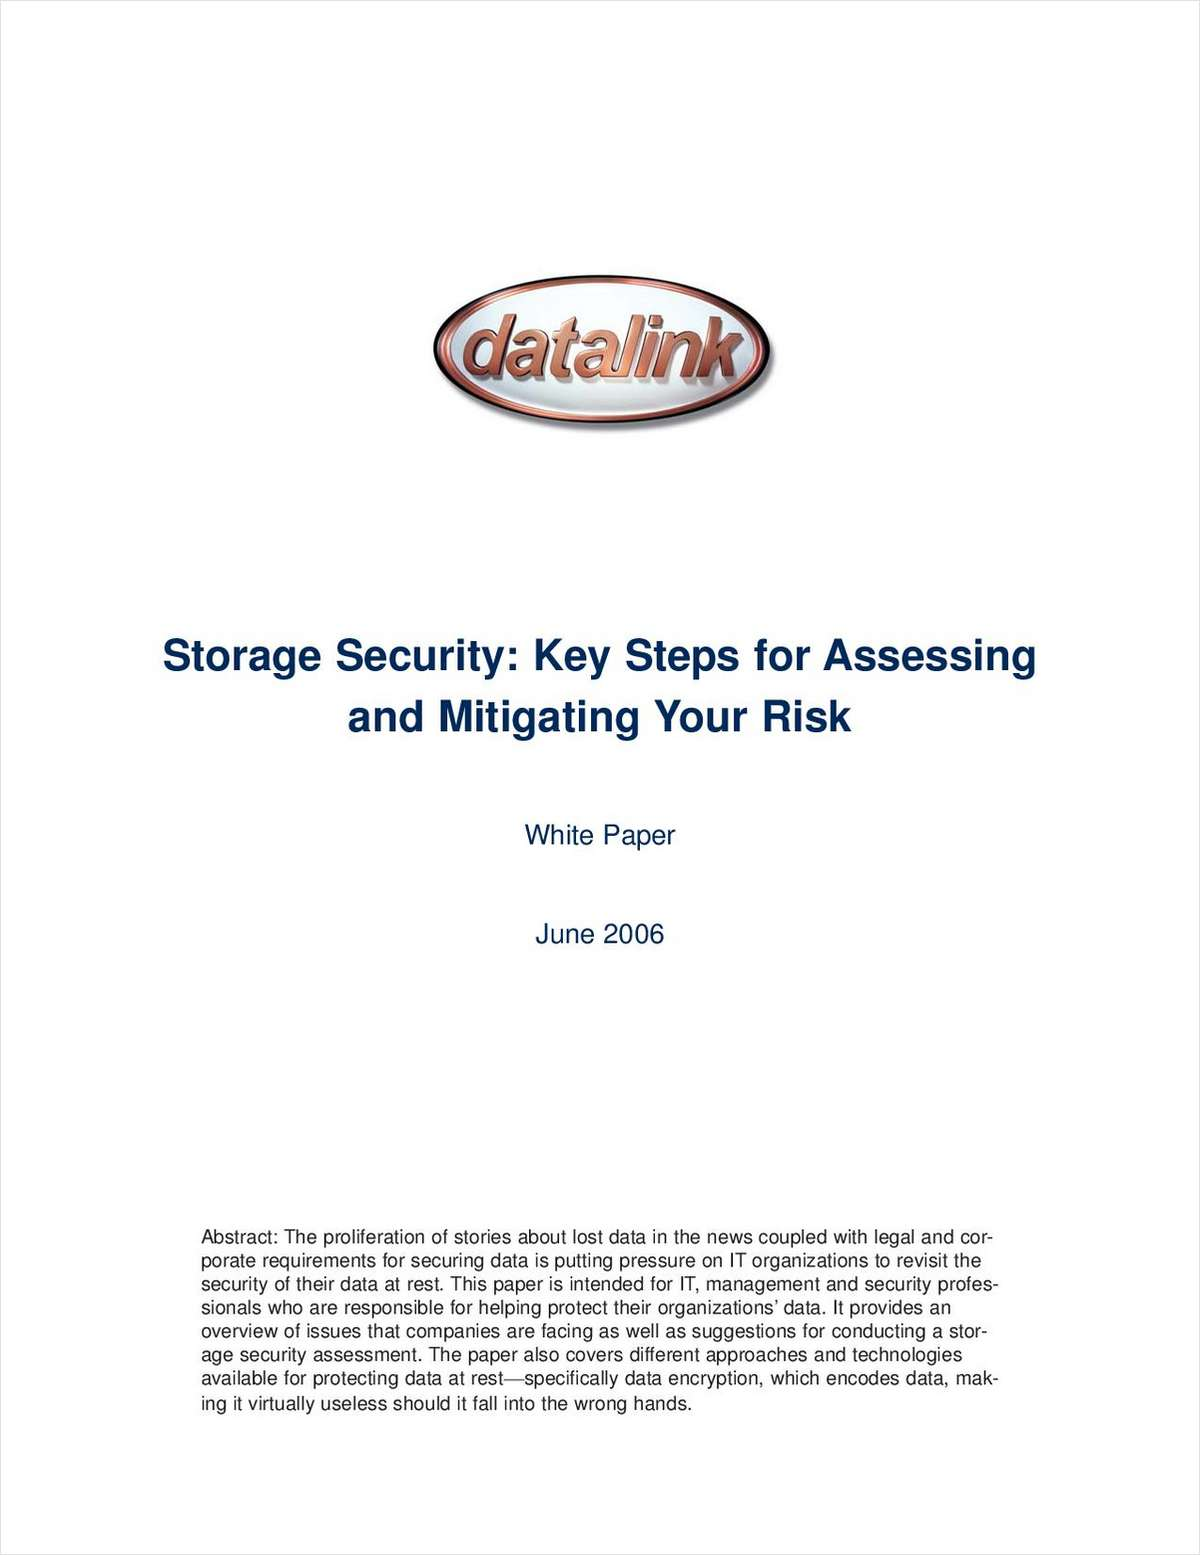 Storage Security: Key Steps for Assessing and Mitigating Your Risk